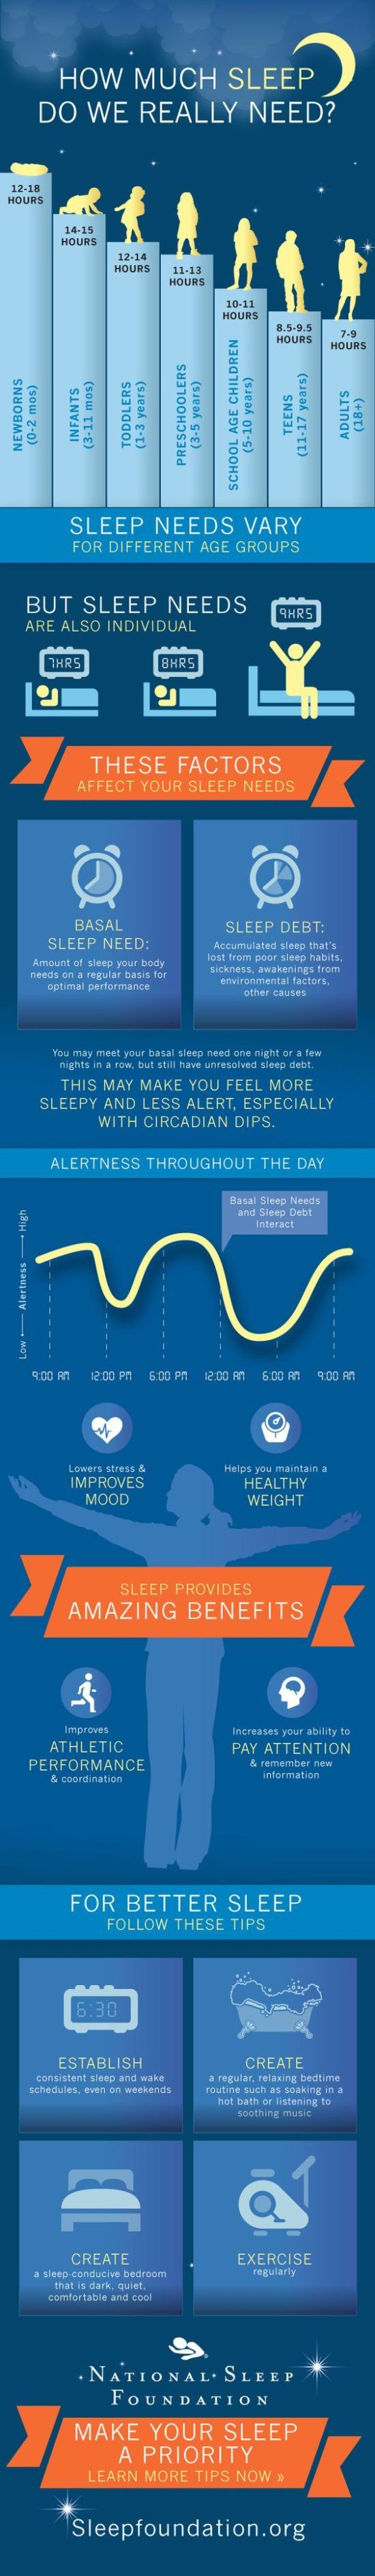 How Much Sleep Do You Really Need Per Night